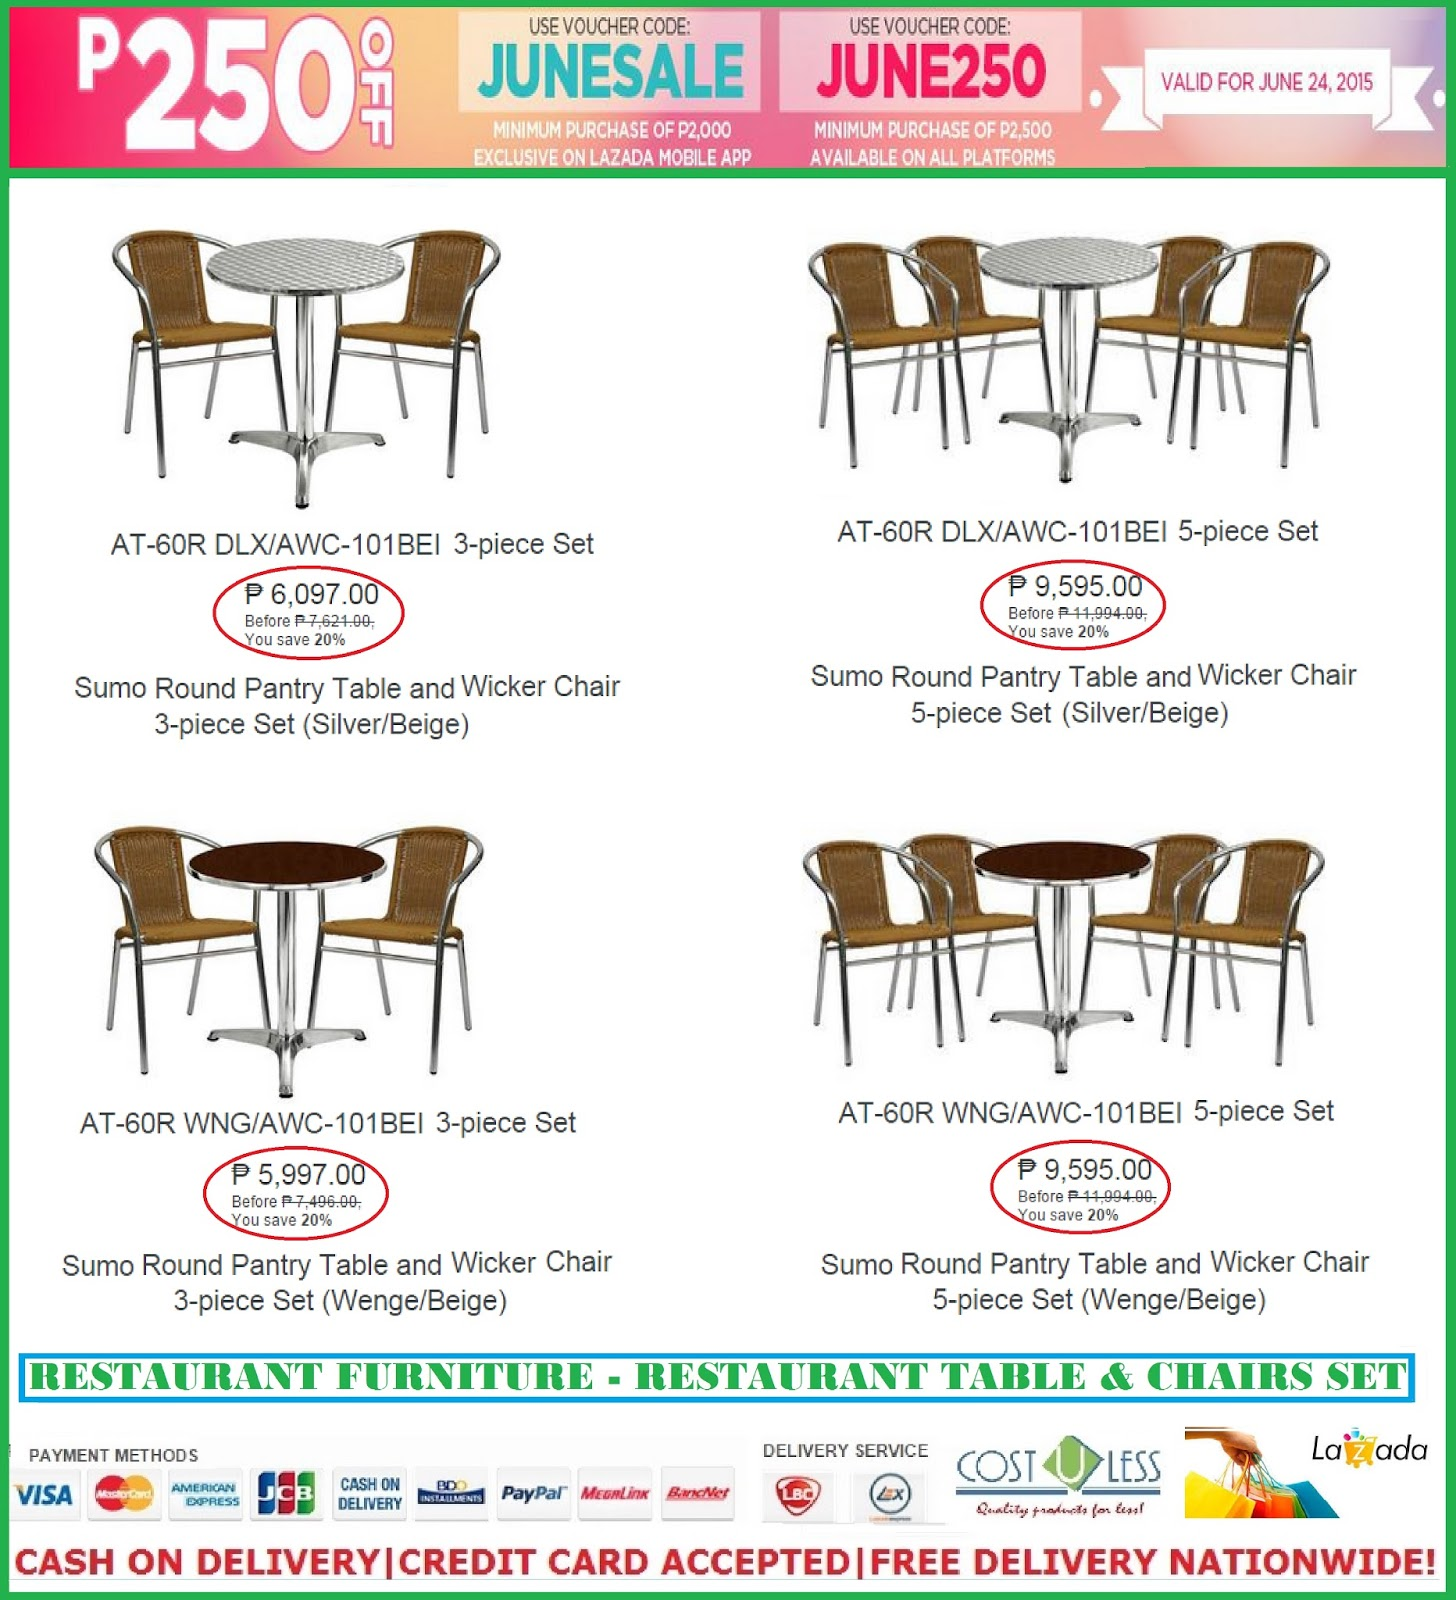 Awesome restaurant furniture 4 less home design for Furniture 4 less